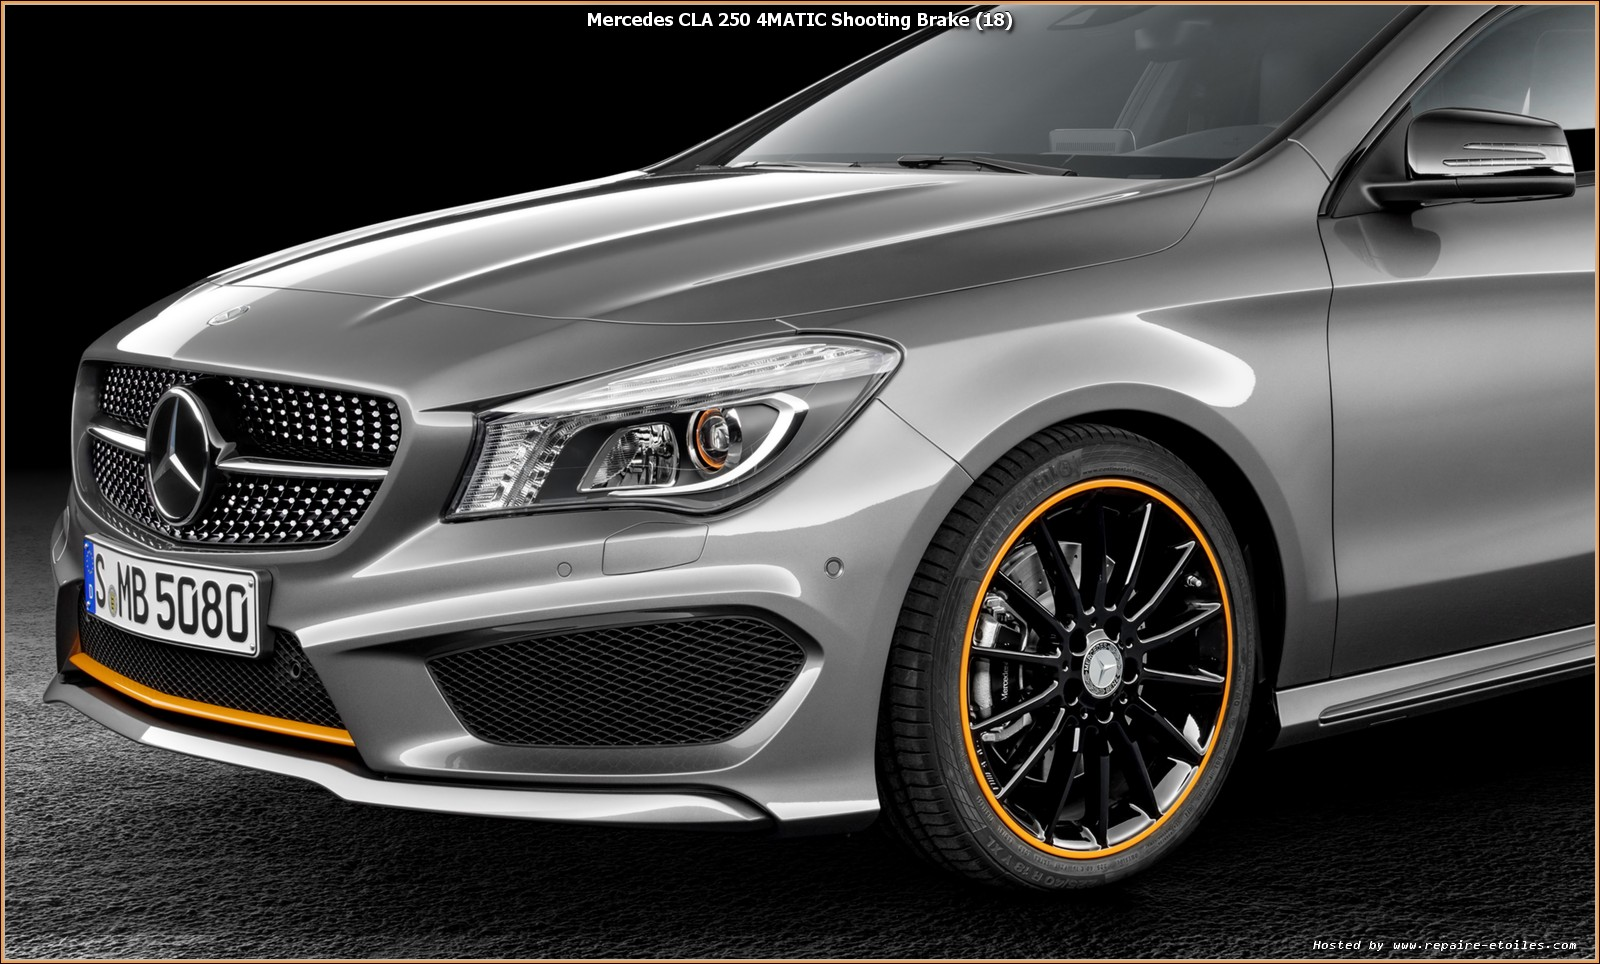 nouveau cla shooting brake mercedes x117. Black Bedroom Furniture Sets. Home Design Ideas